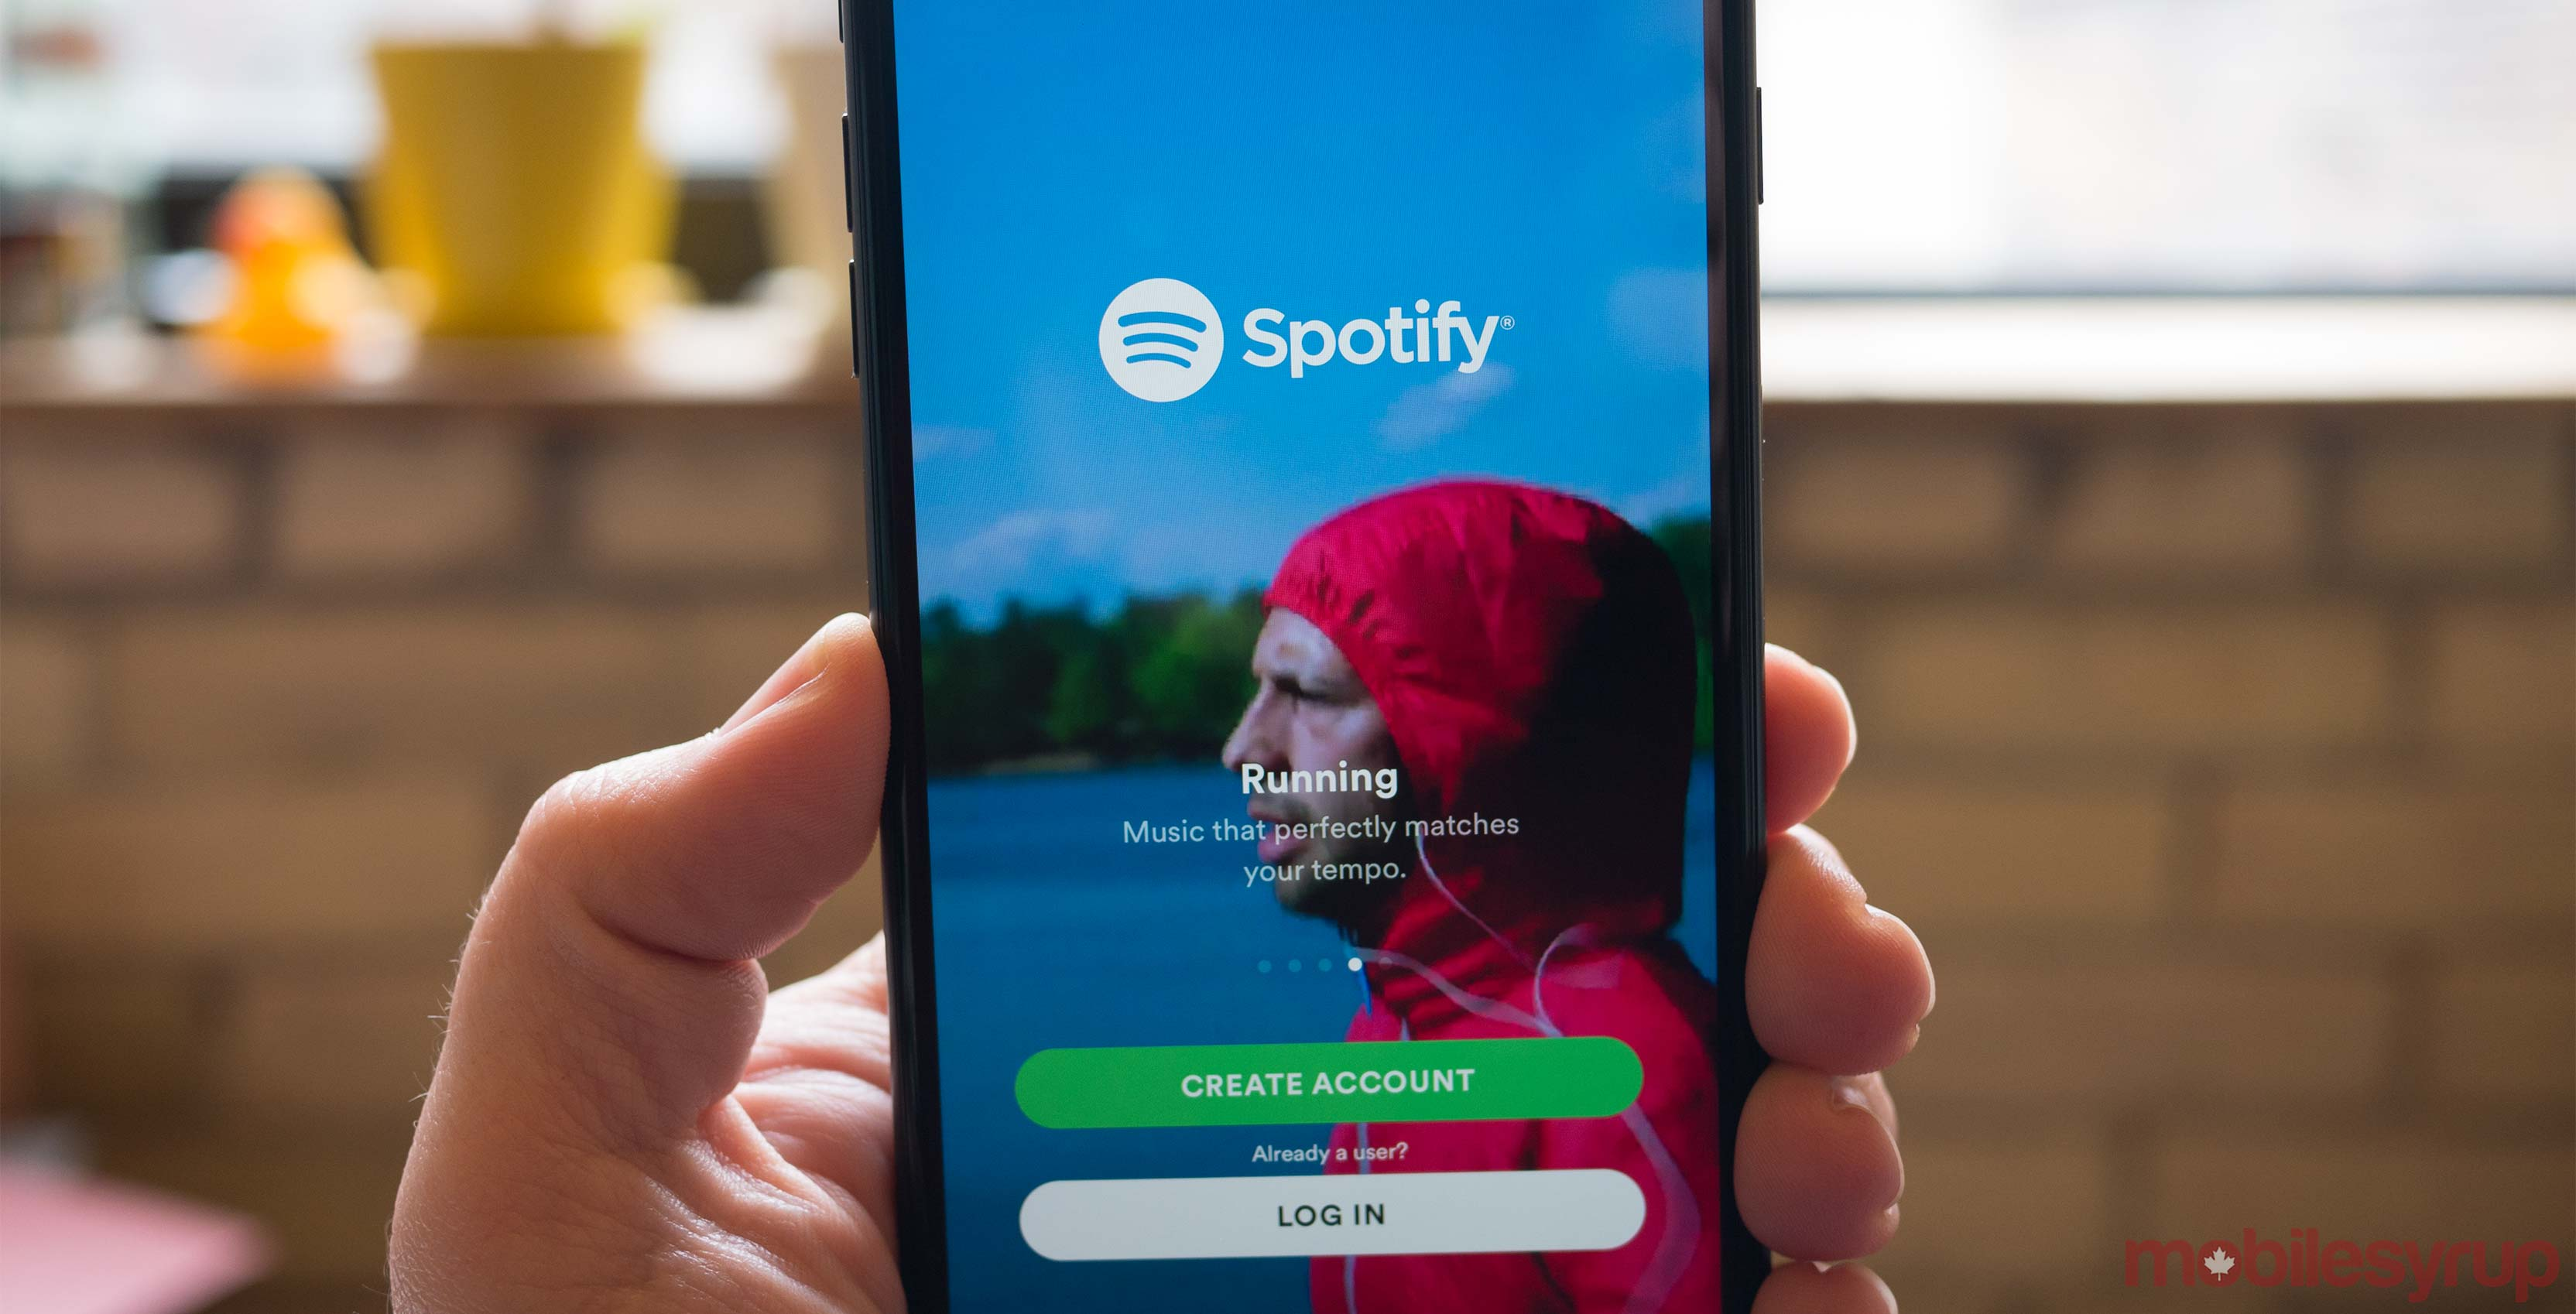 Spotify app on phone